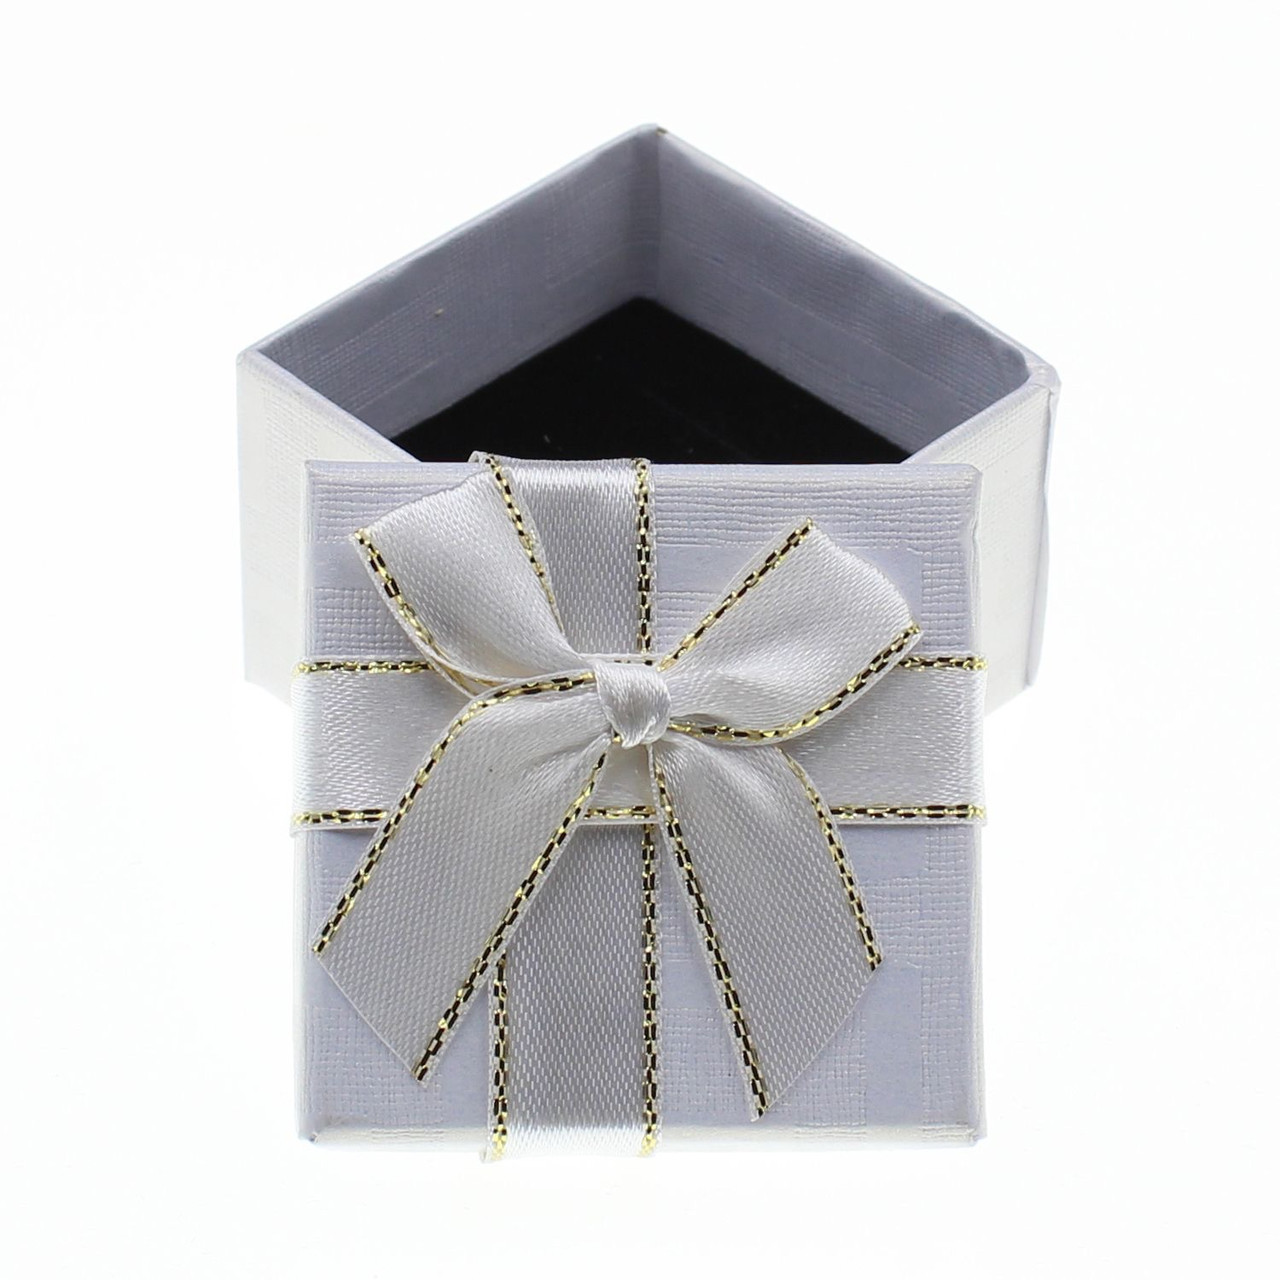 Ring box Ccc2white